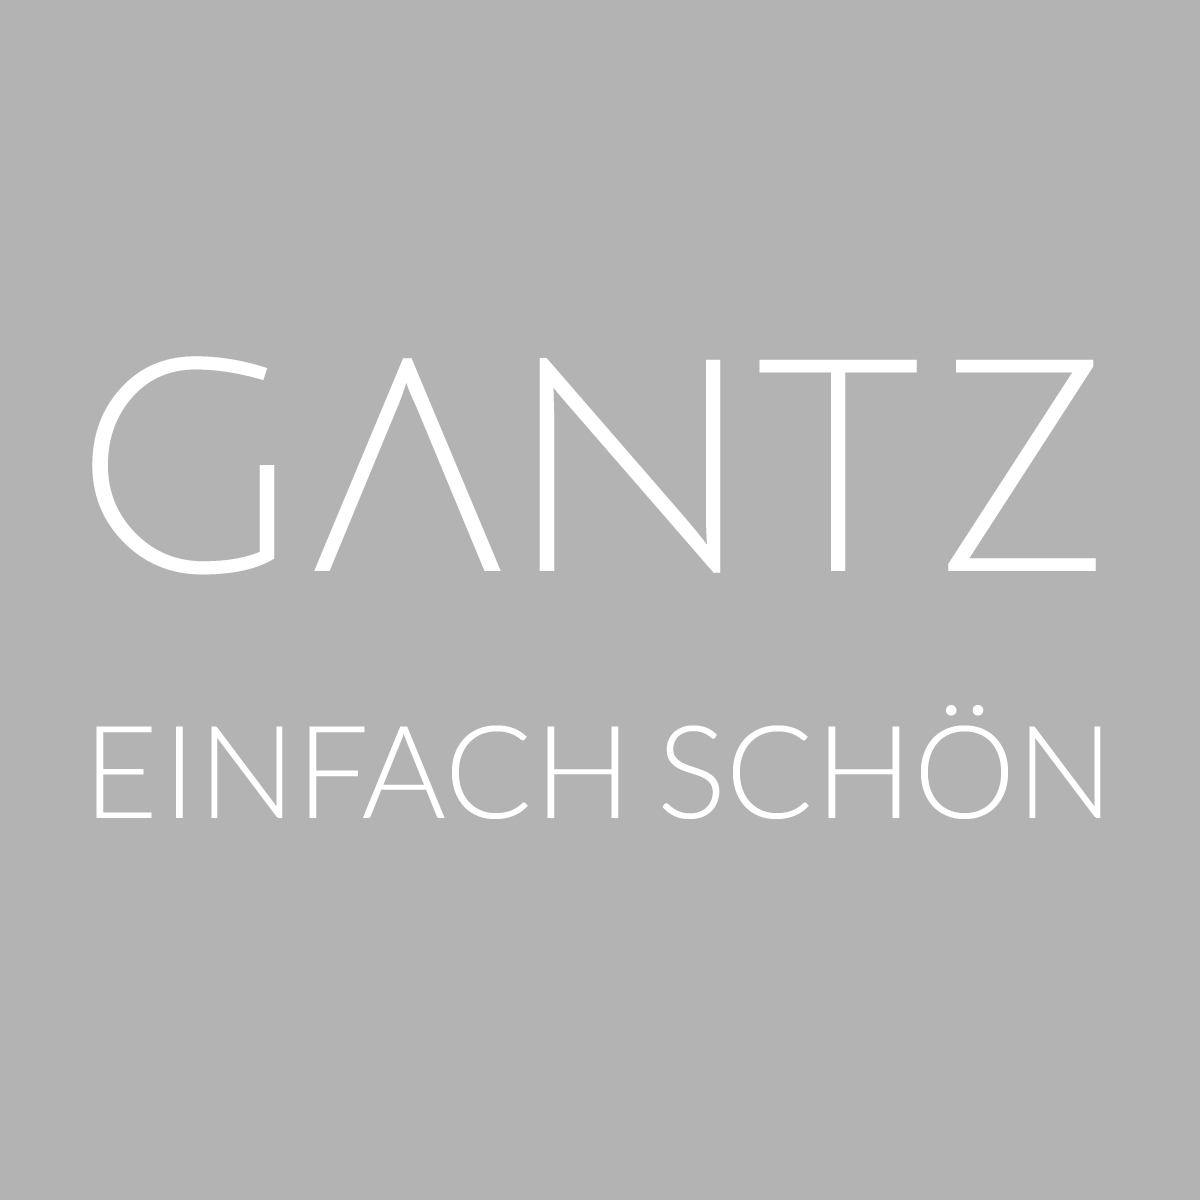 gantz einfach sch n regale nach ma m bel einzelhandel berlin deutschland tel. Black Bedroom Furniture Sets. Home Design Ideas